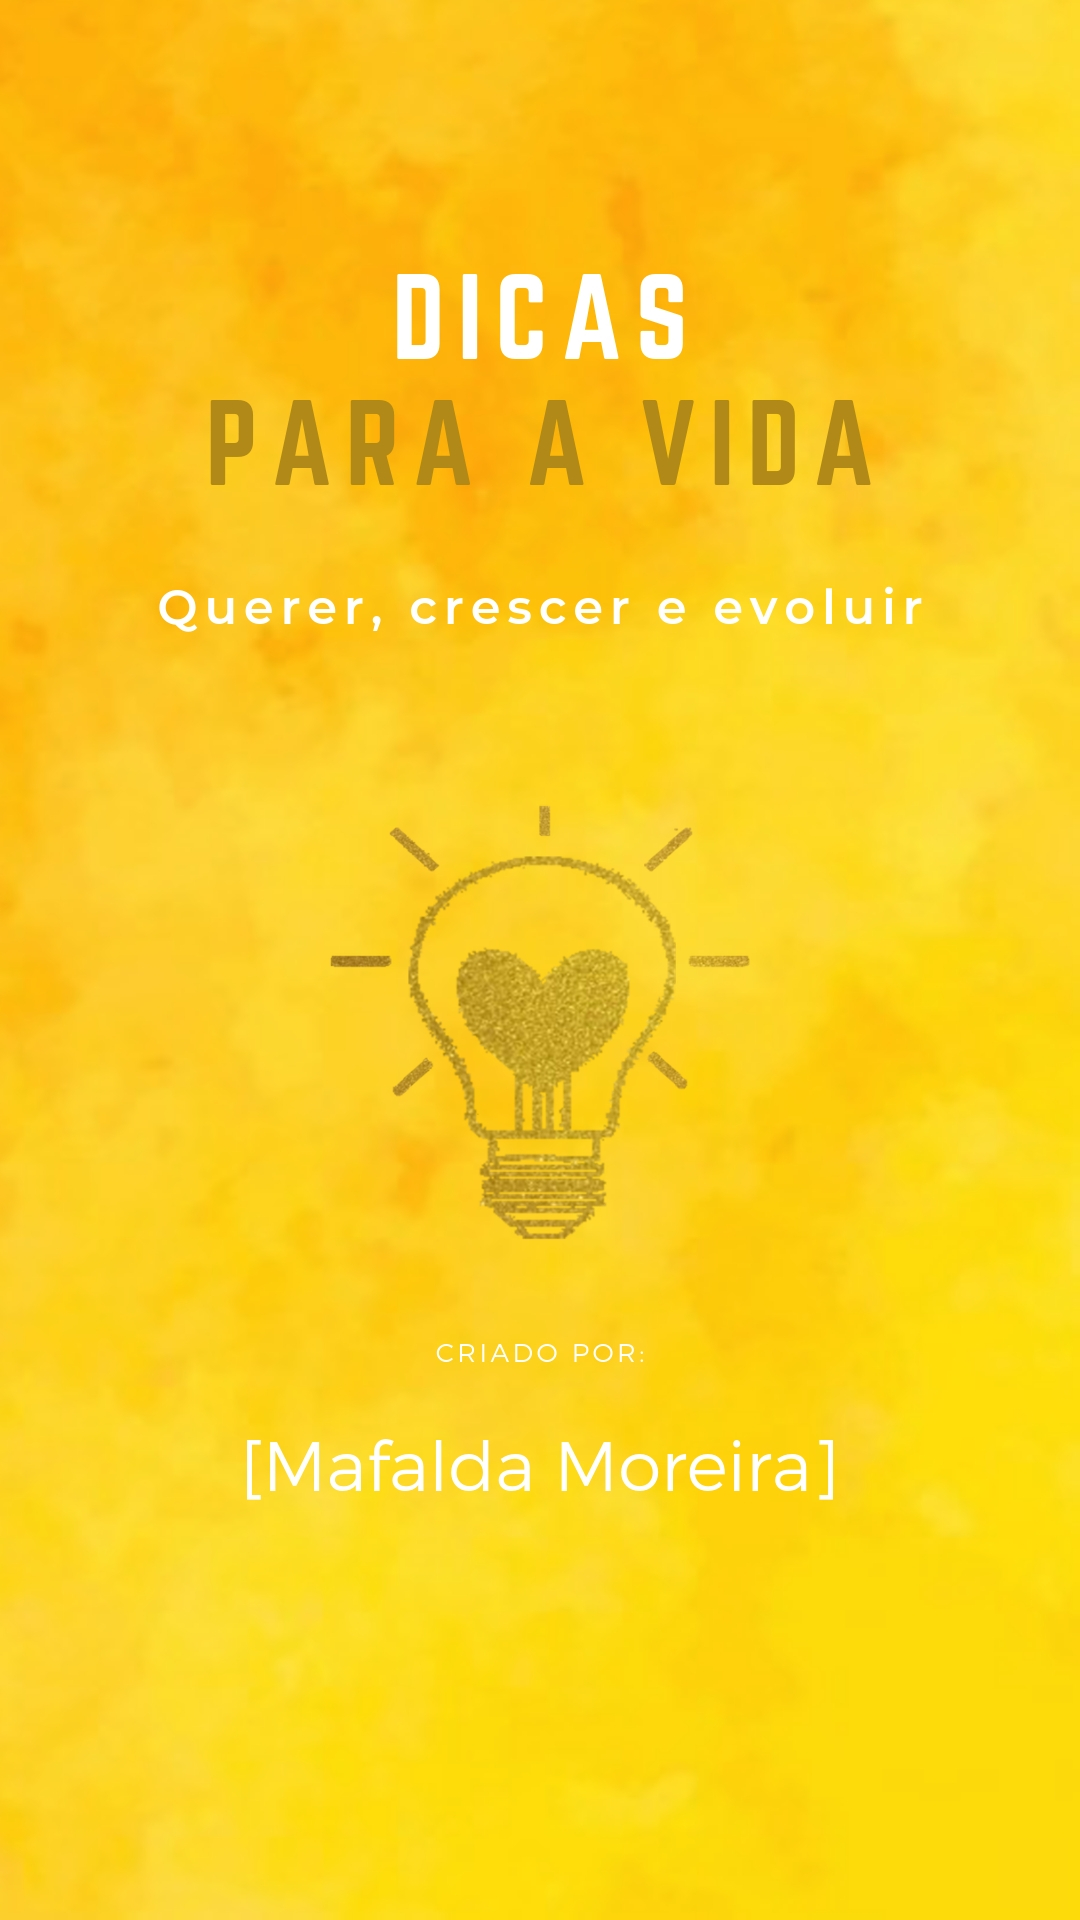 7-instagram-wallpaper-mafalda-moreira